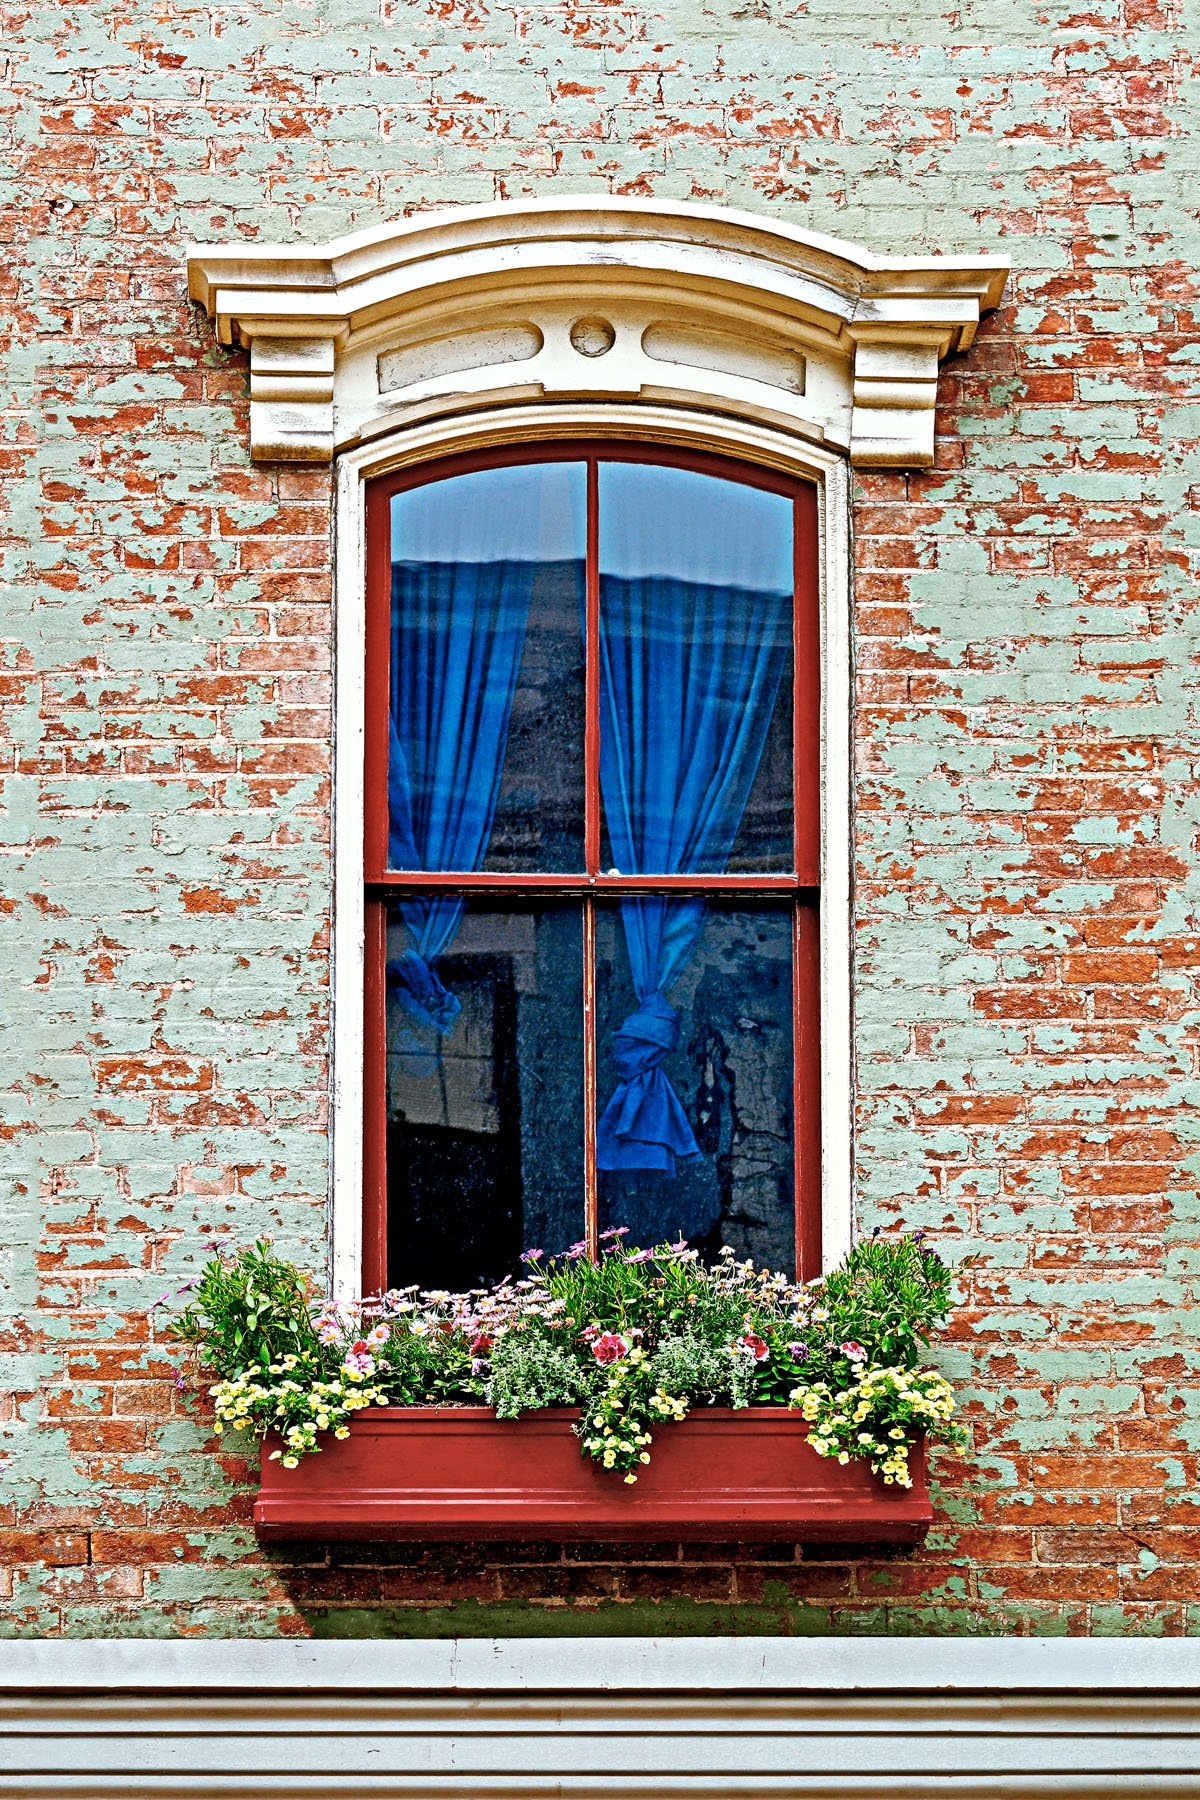 MAIN WINDOW - I found this window on Main Street in Cincinnati. You could probably come up with a more creative name for it.